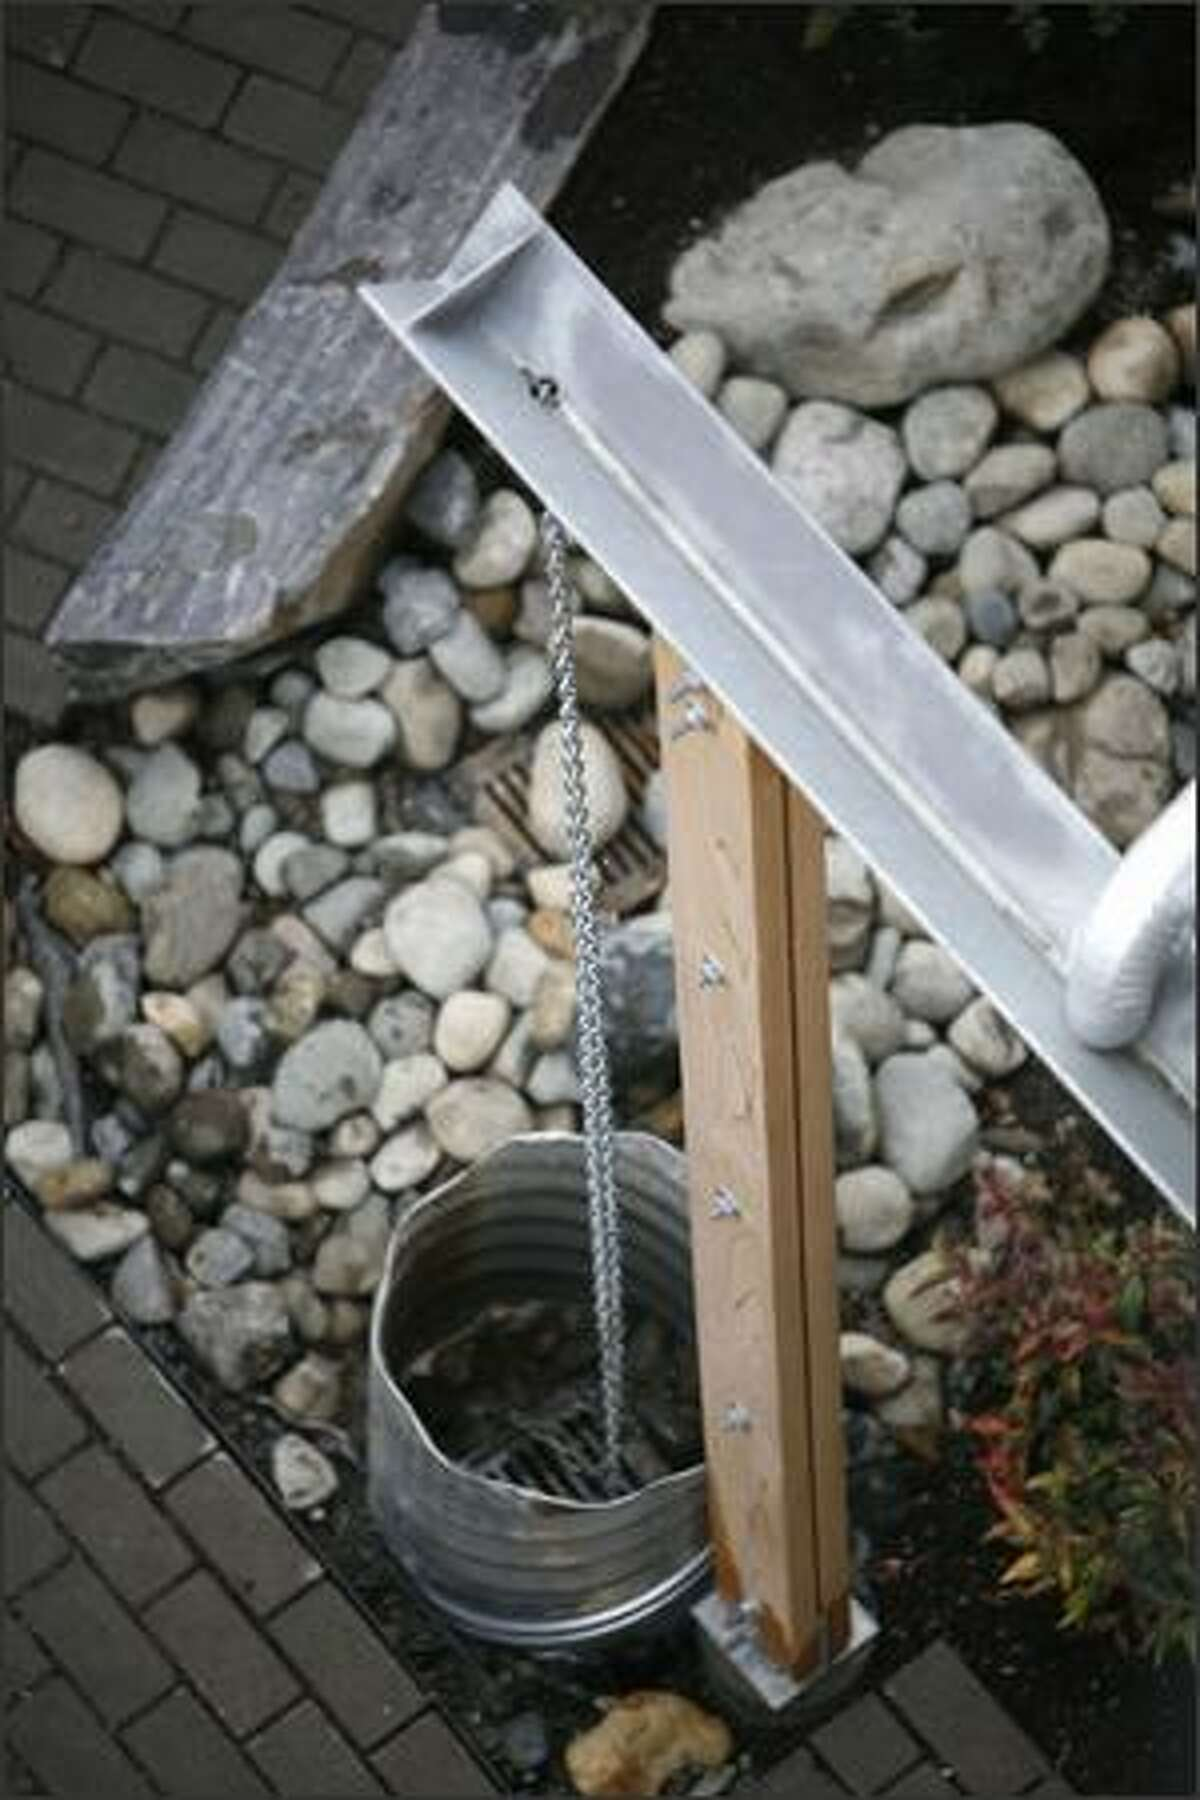 A rainwater collection system sends water into a cistern, where it is reused for flushing toilets and watering gardens.